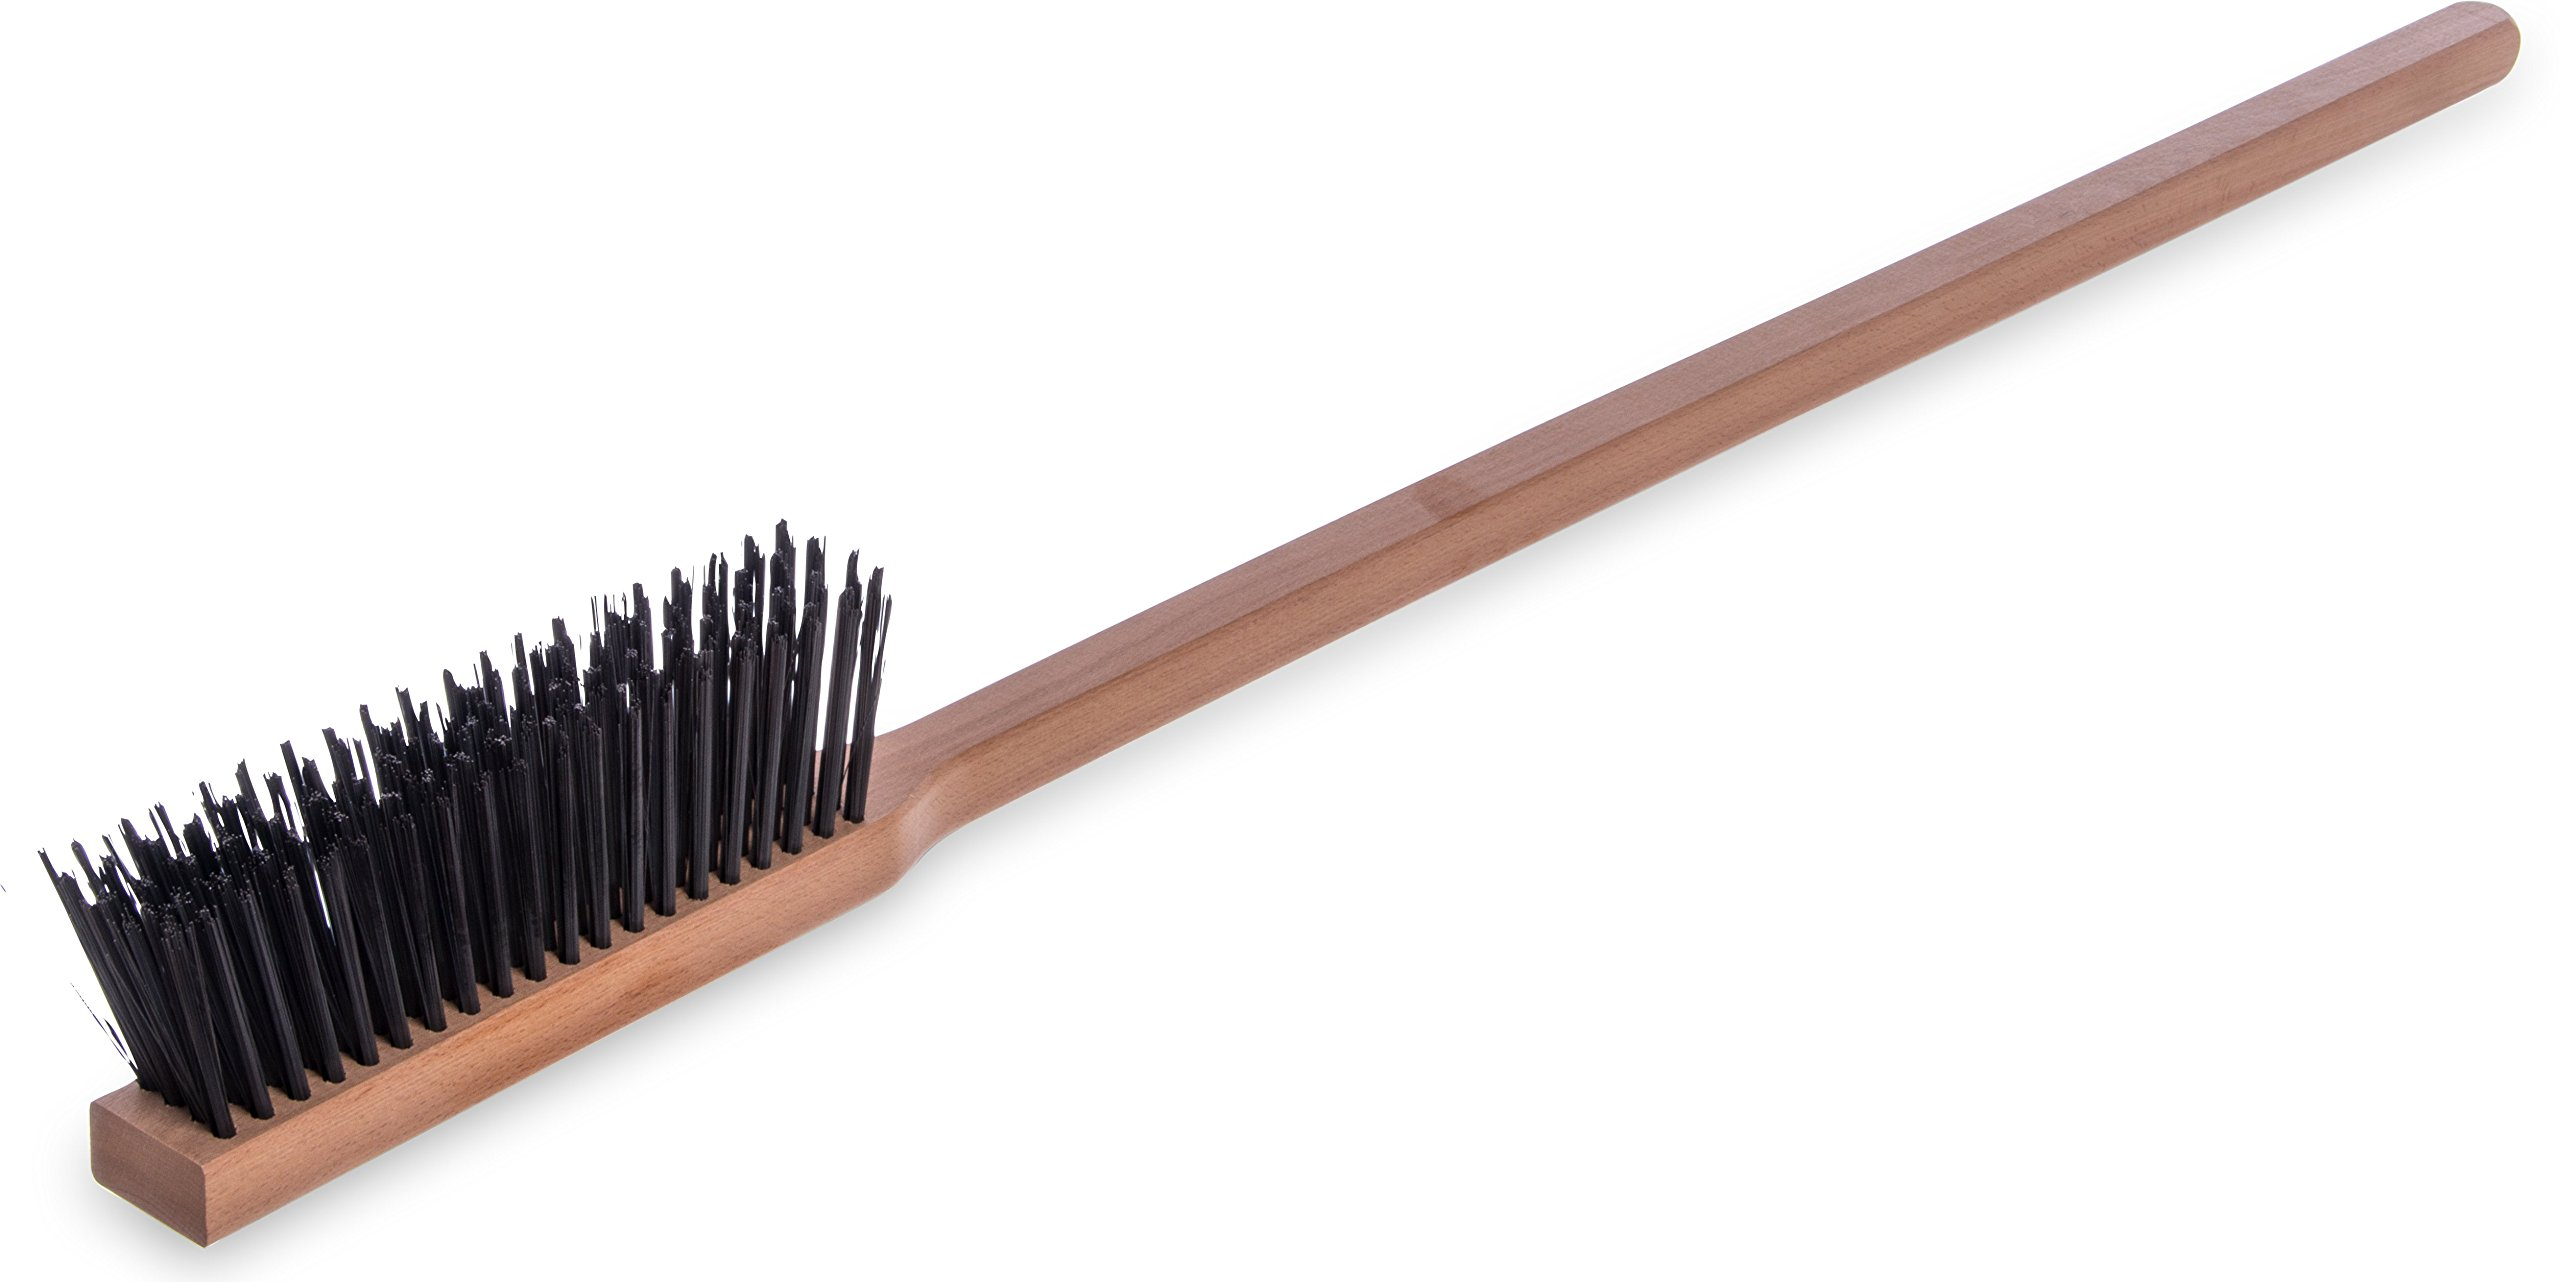 "Carlisle 4577200 Carbon Steel Bristle Pizza/BBQ Oven Brush, 39"" Overall Length"